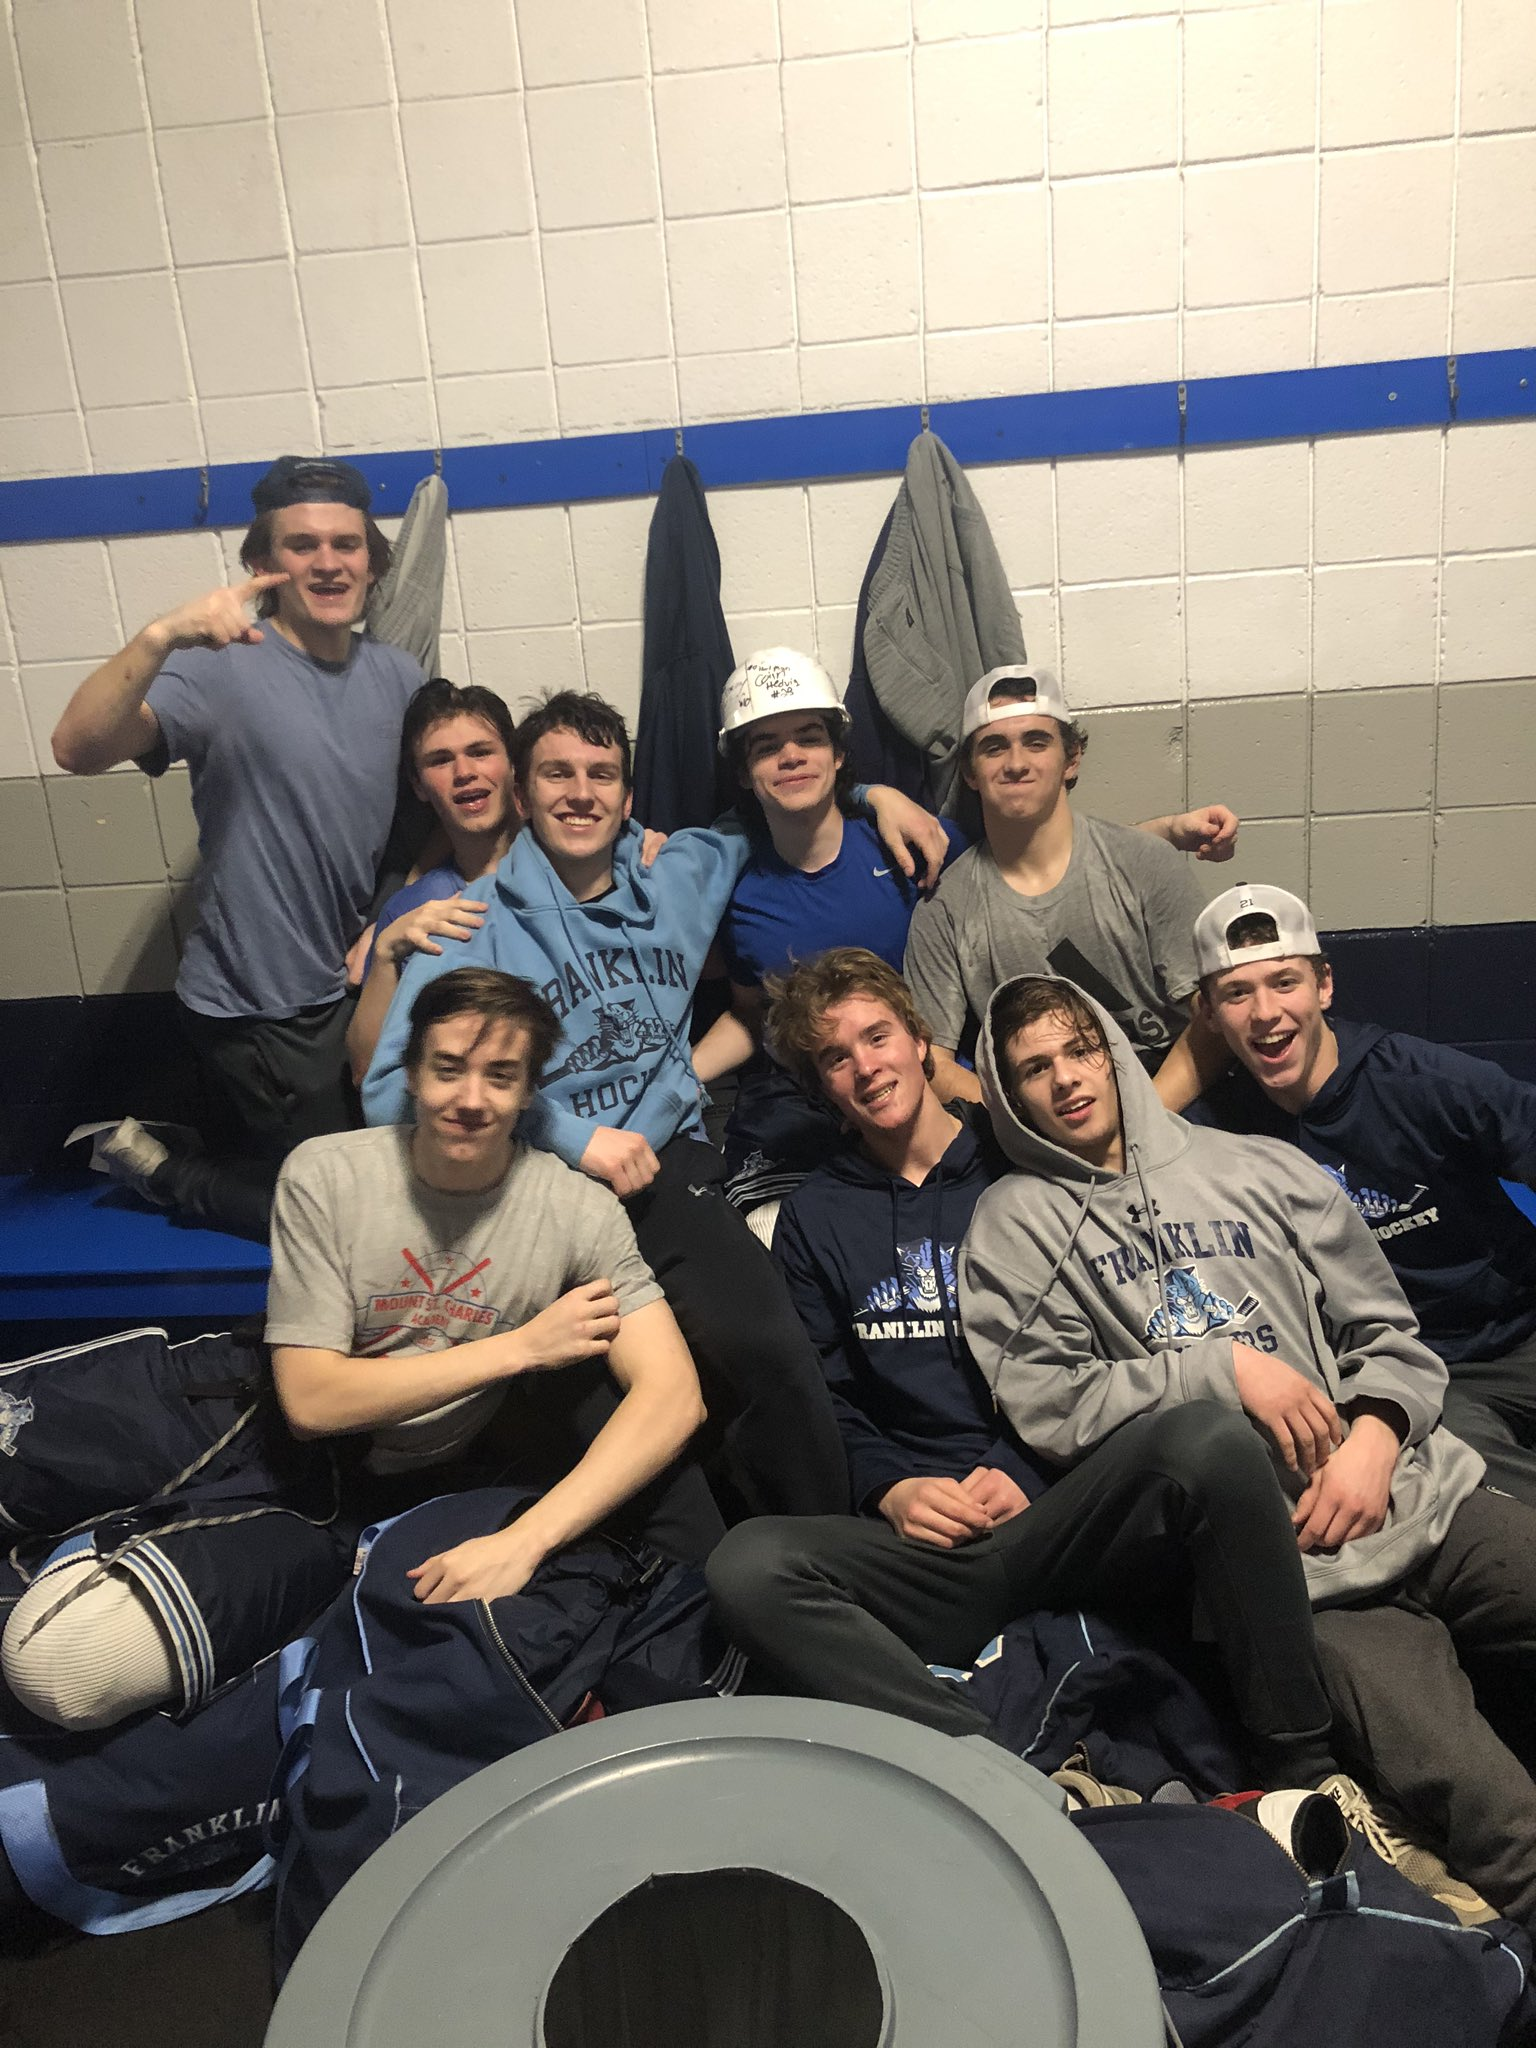 Great 9-2 win over Attleboro tonight. Hard hat to JT Dwyer for getting 2 goals and an assist. #LETSGOOO